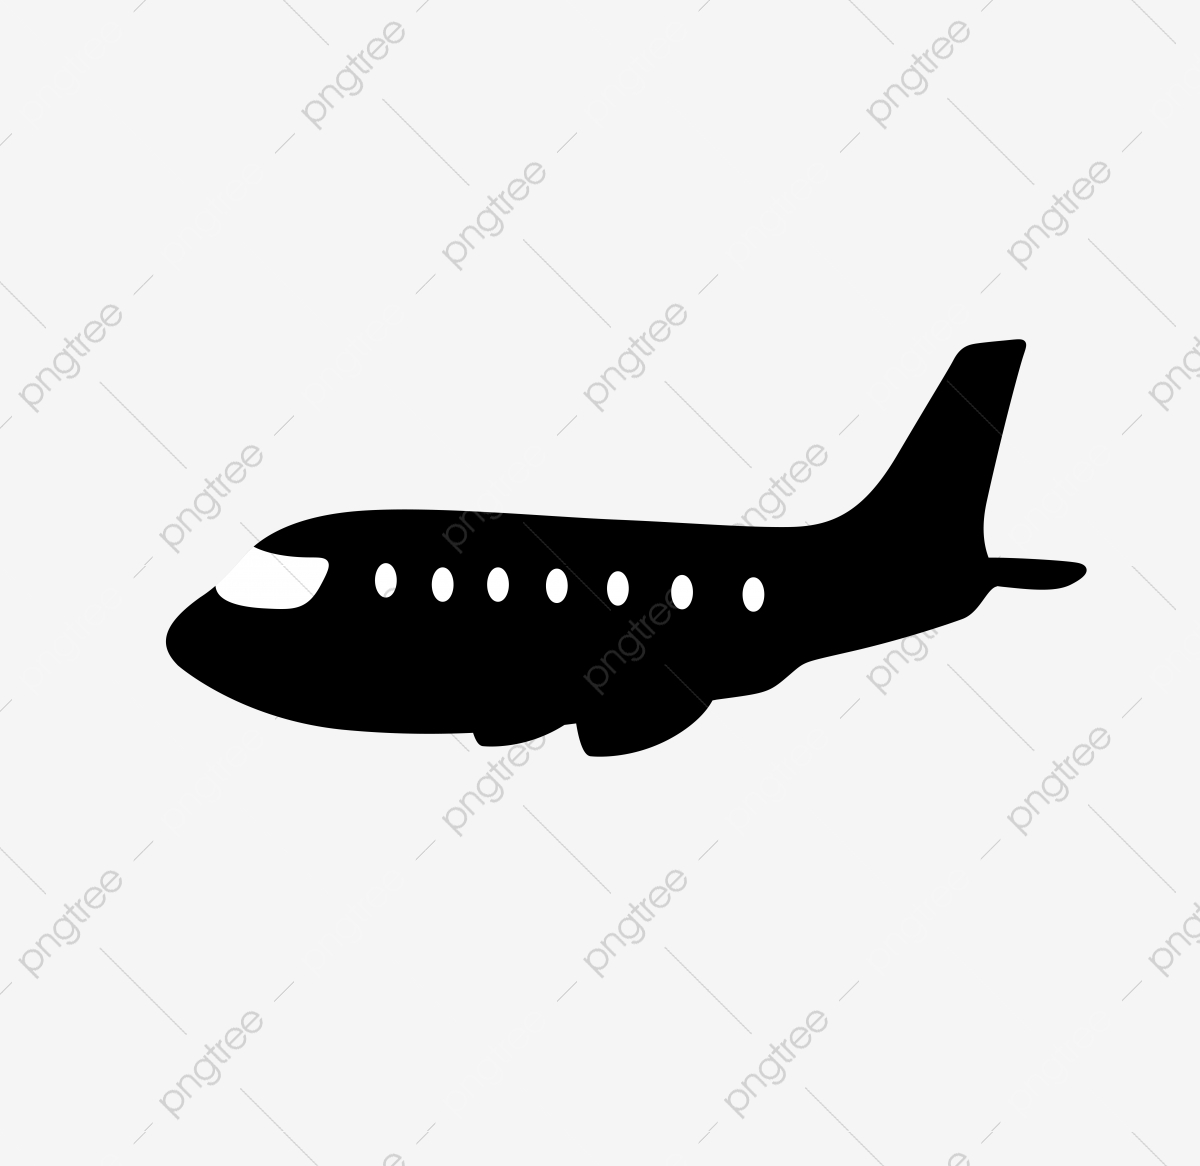 Original Vector Aircraft Silhouette Material For Commercial Use